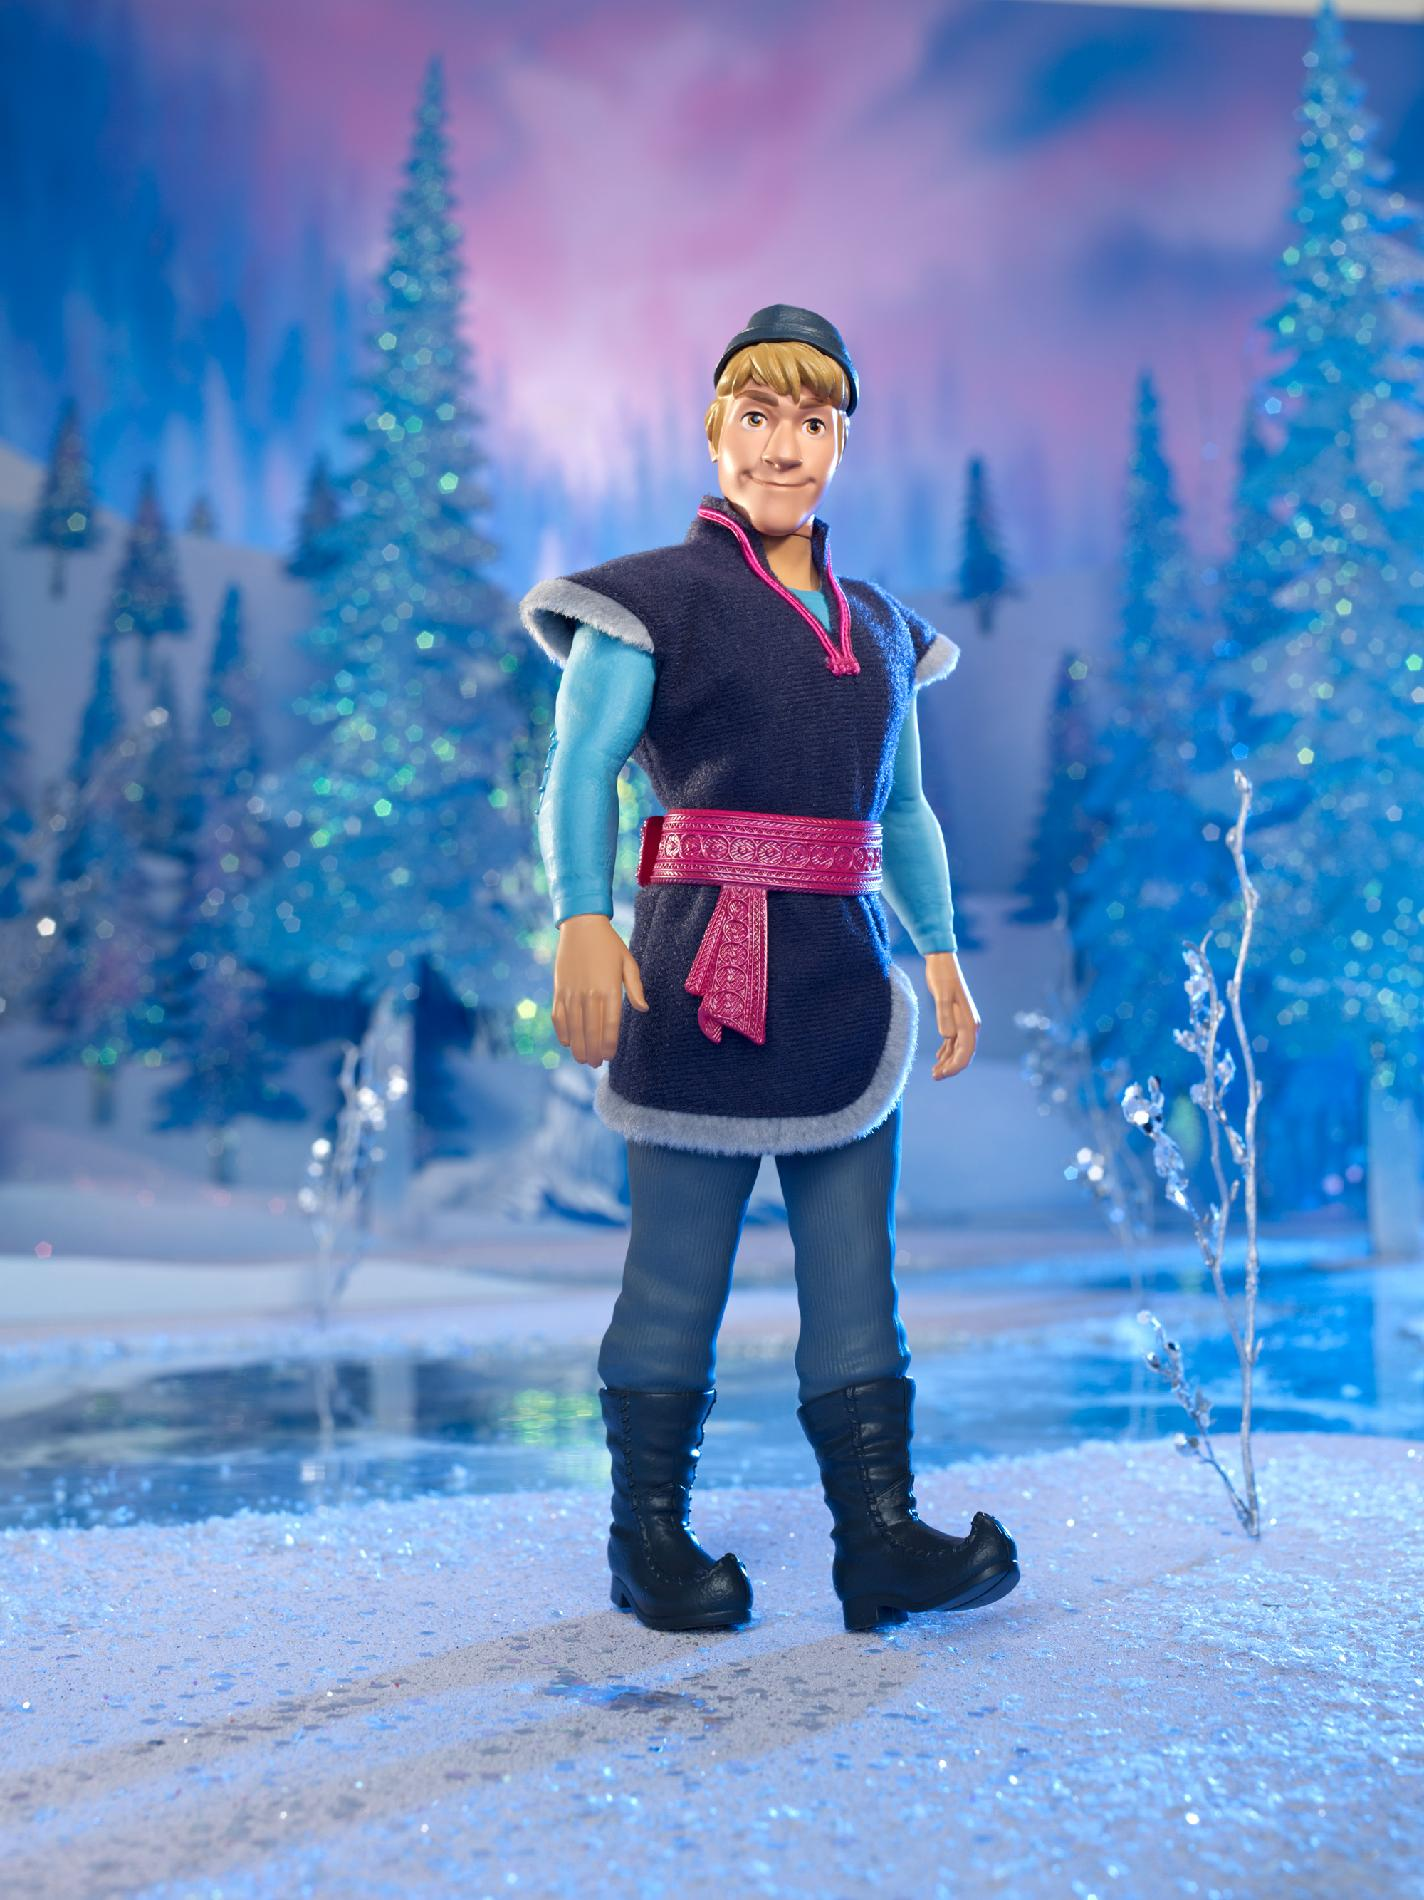 kristoff frozen photo - photo #16